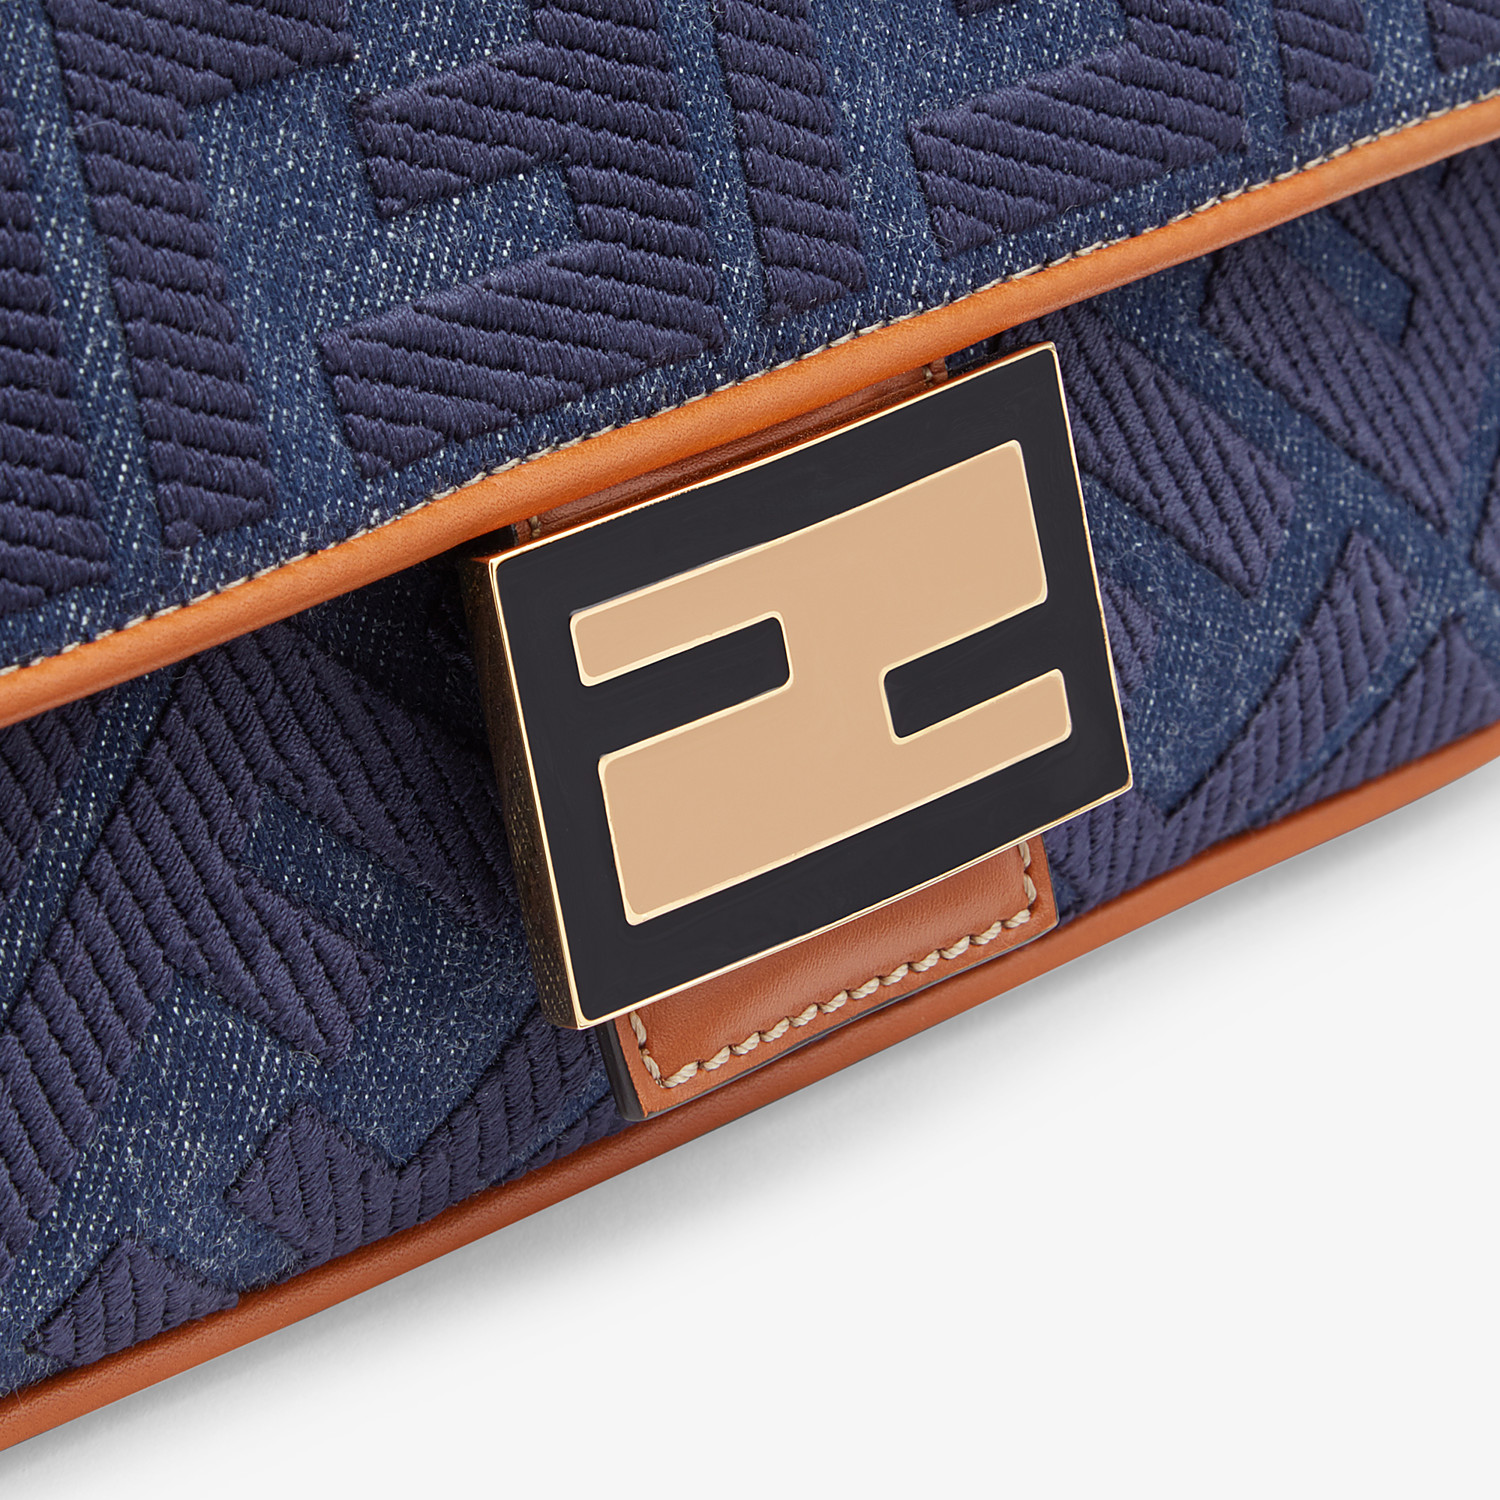 FENDI BAGUETTE - Tasche aus Denim in Blau - view 5 detail